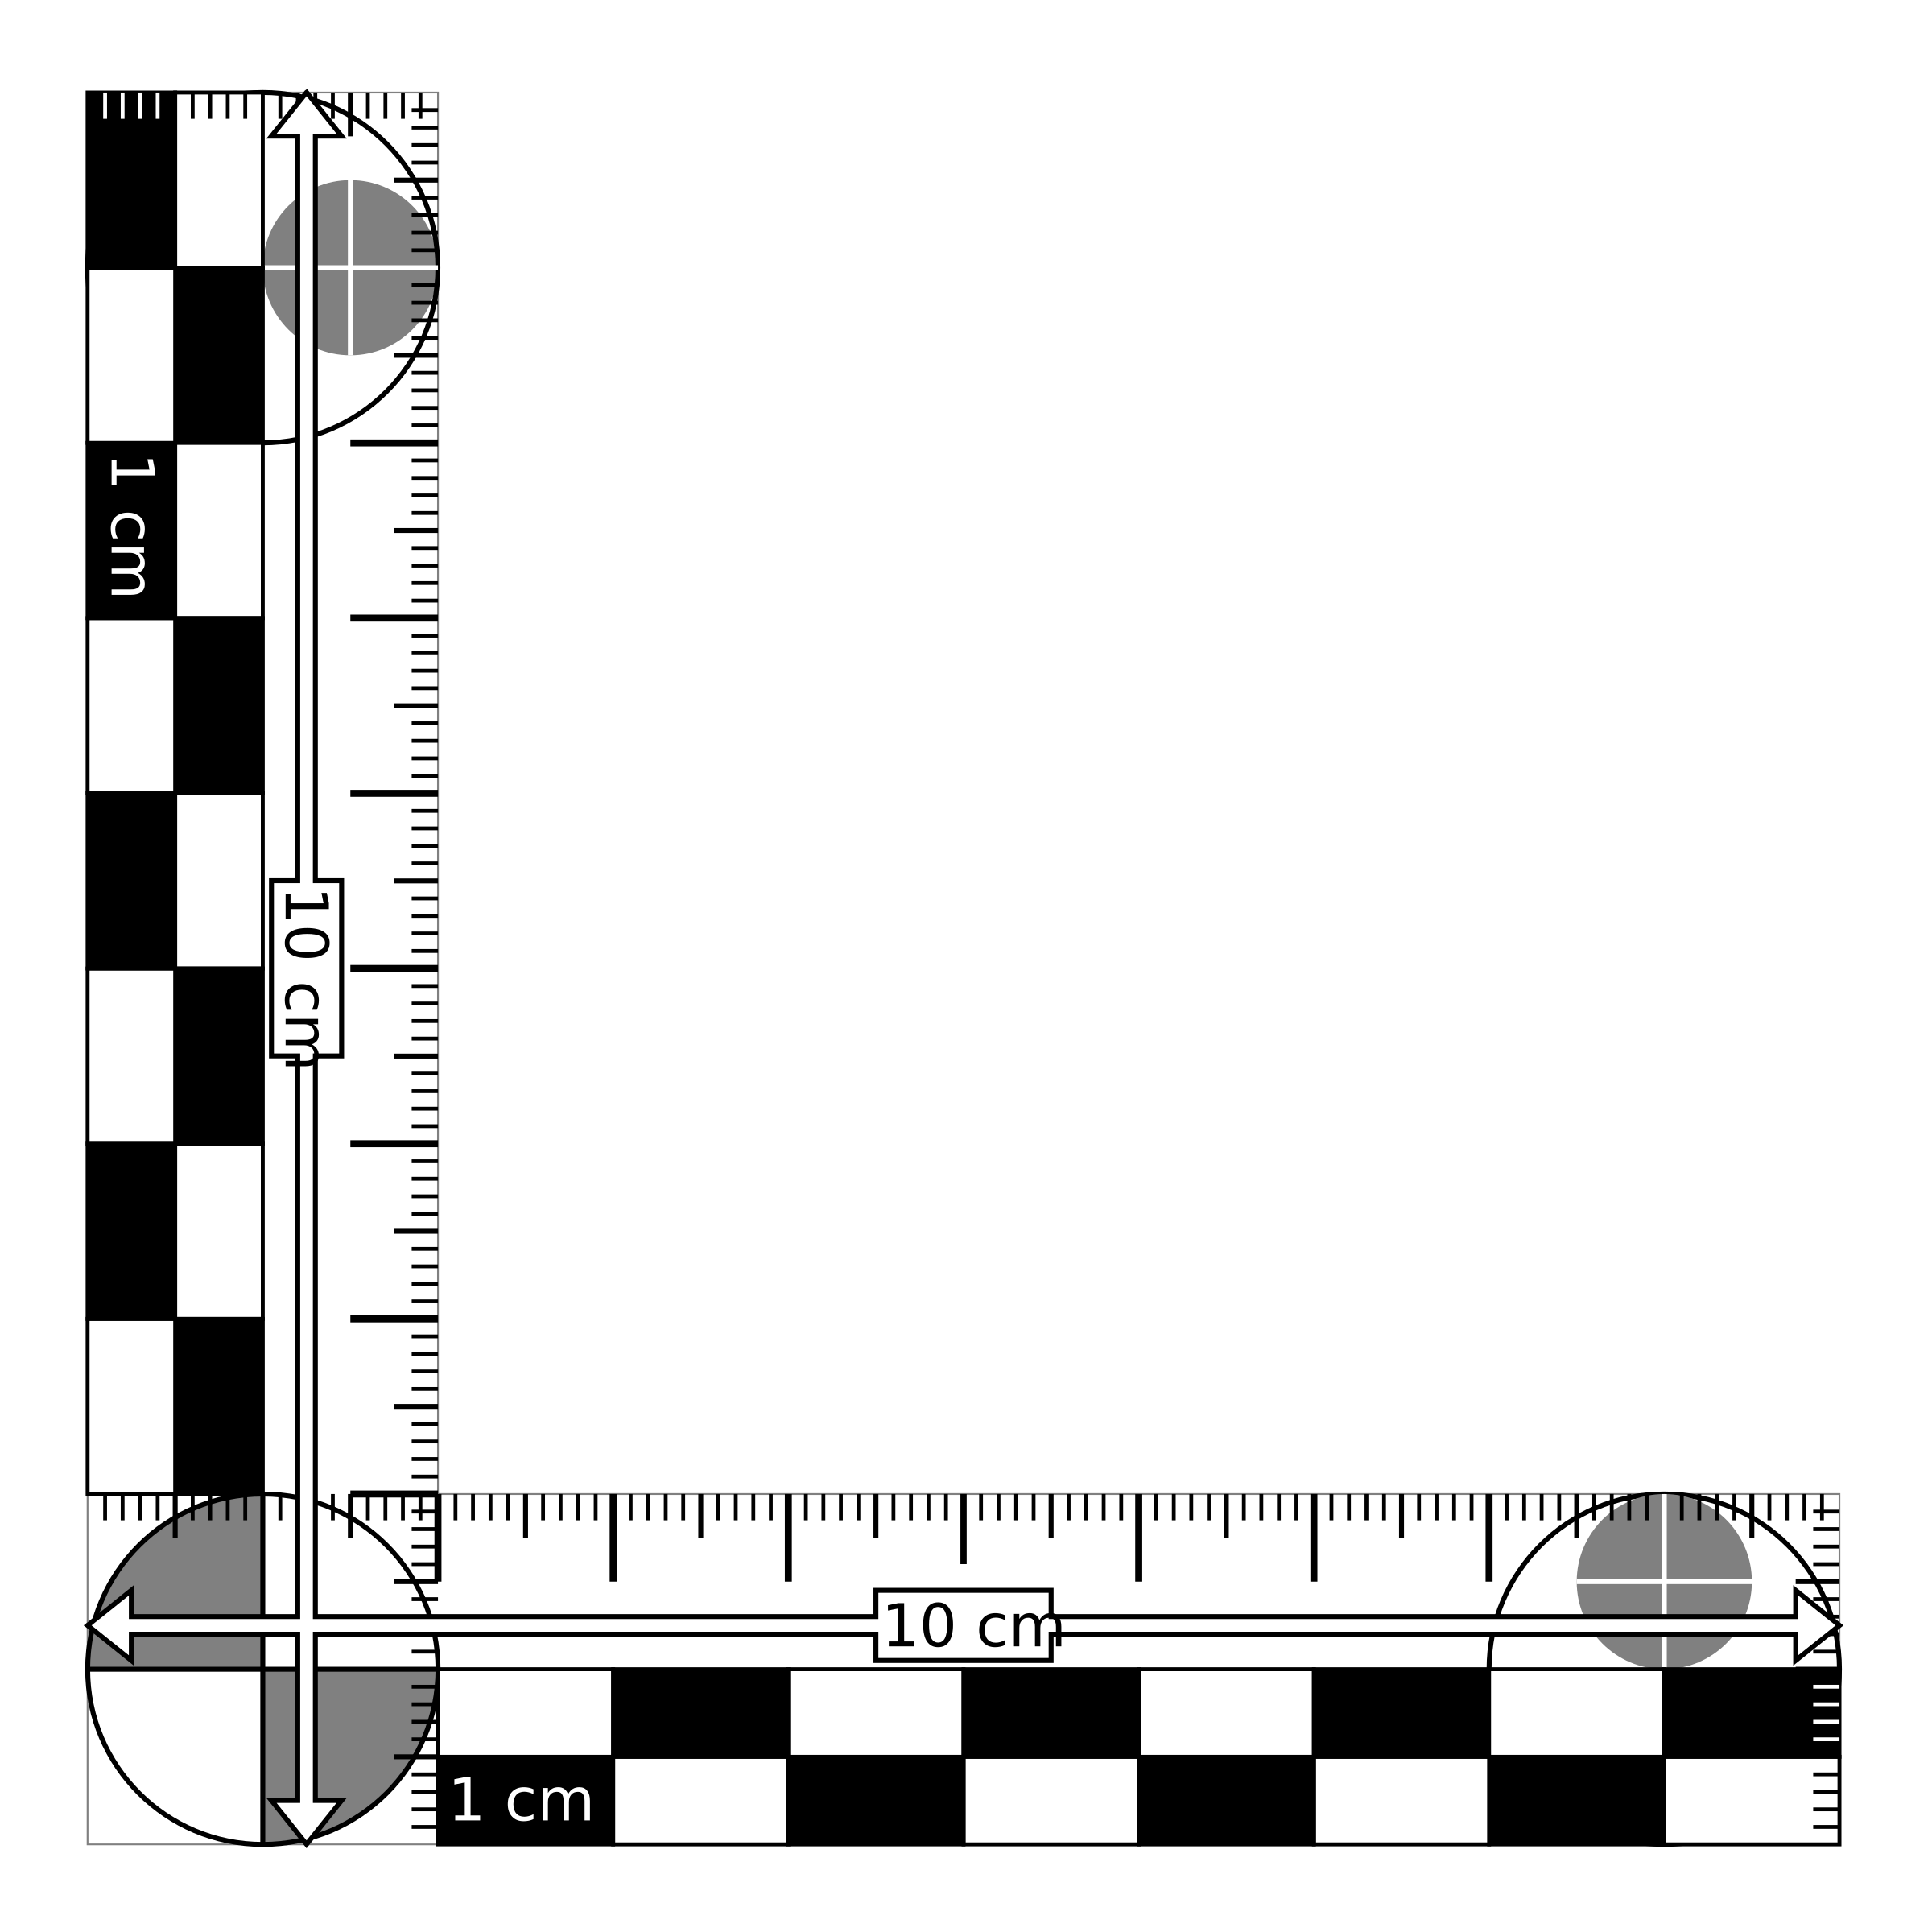 Photomacrographic scale x cm. Clipart ruler printable